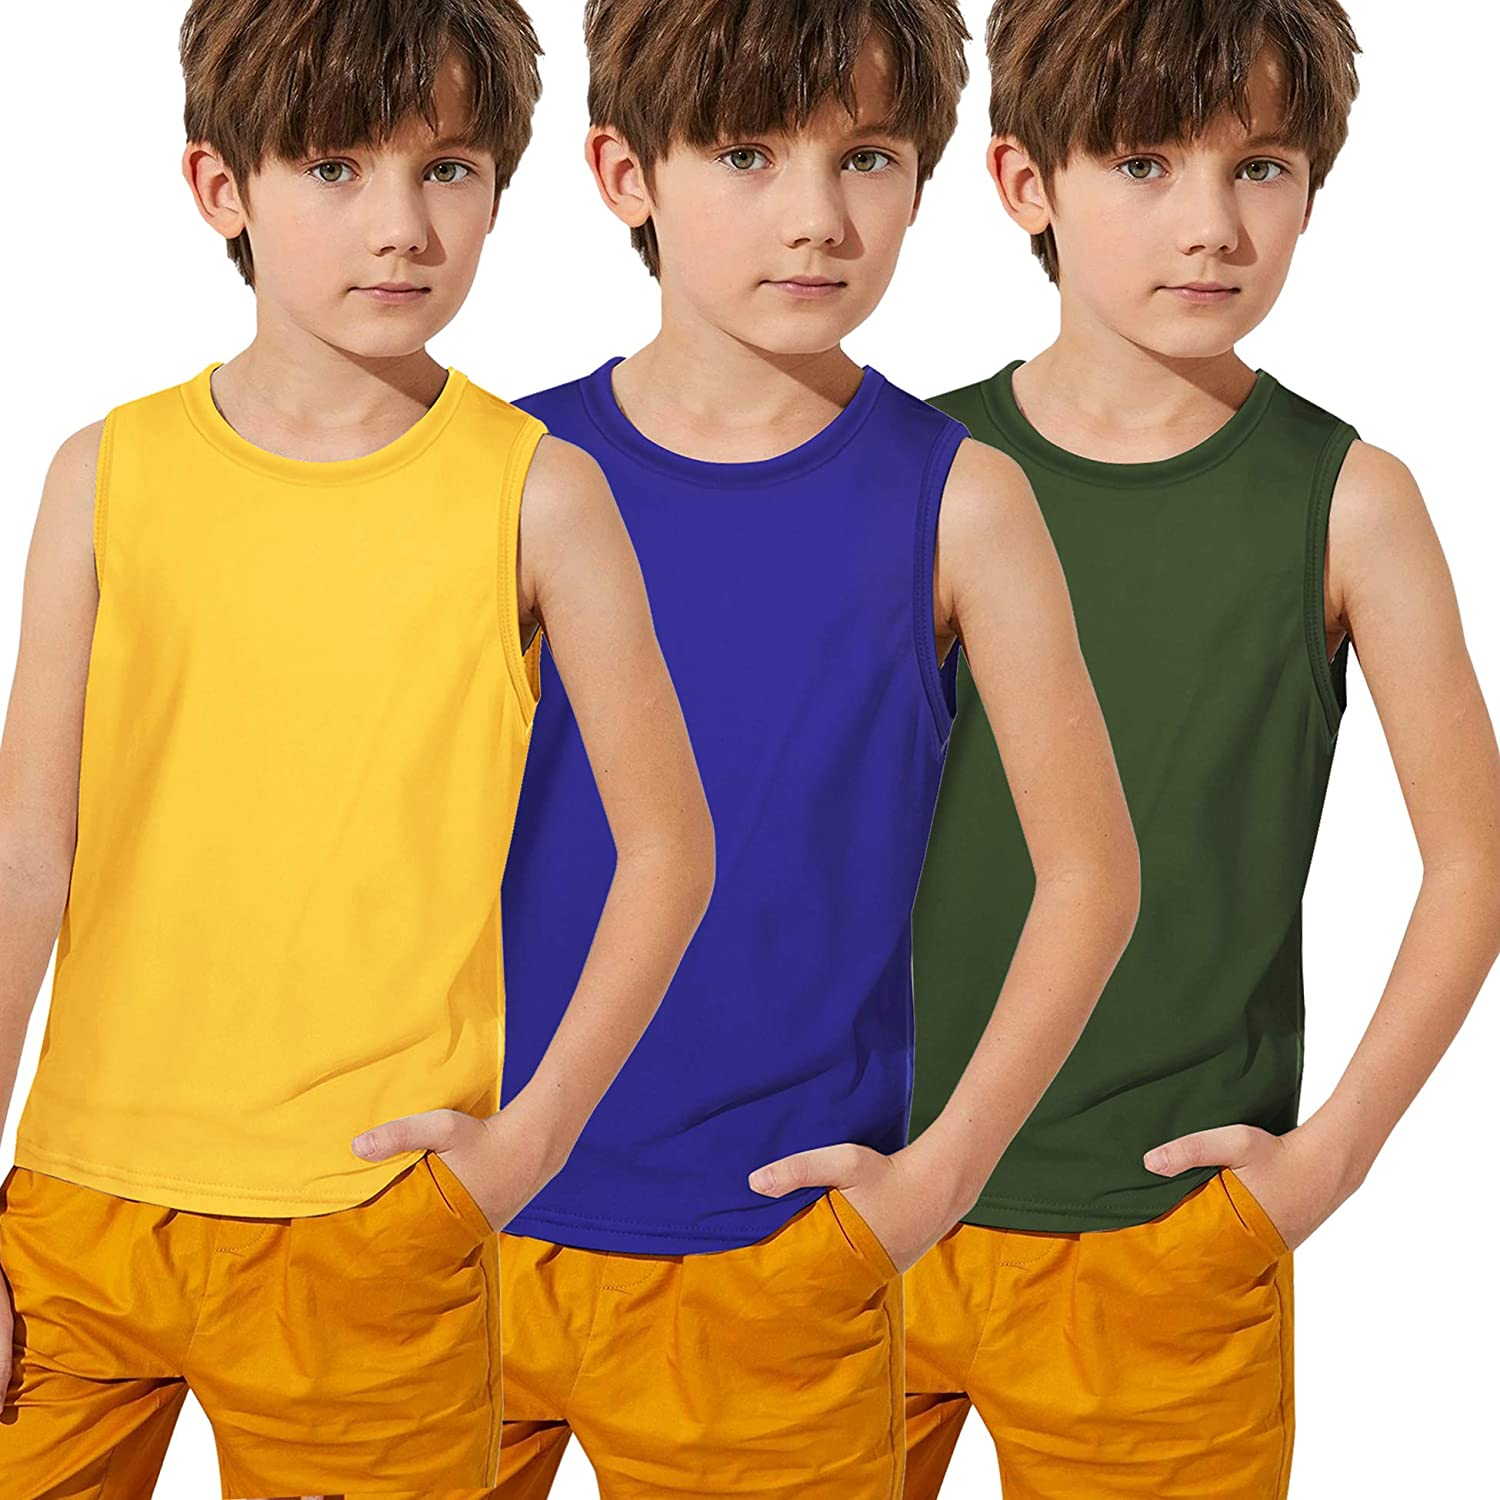 Boyoo Low price Tulsa Mall Big Boys 3 Pack Active Moisture Youth Tank At Tops Wicking